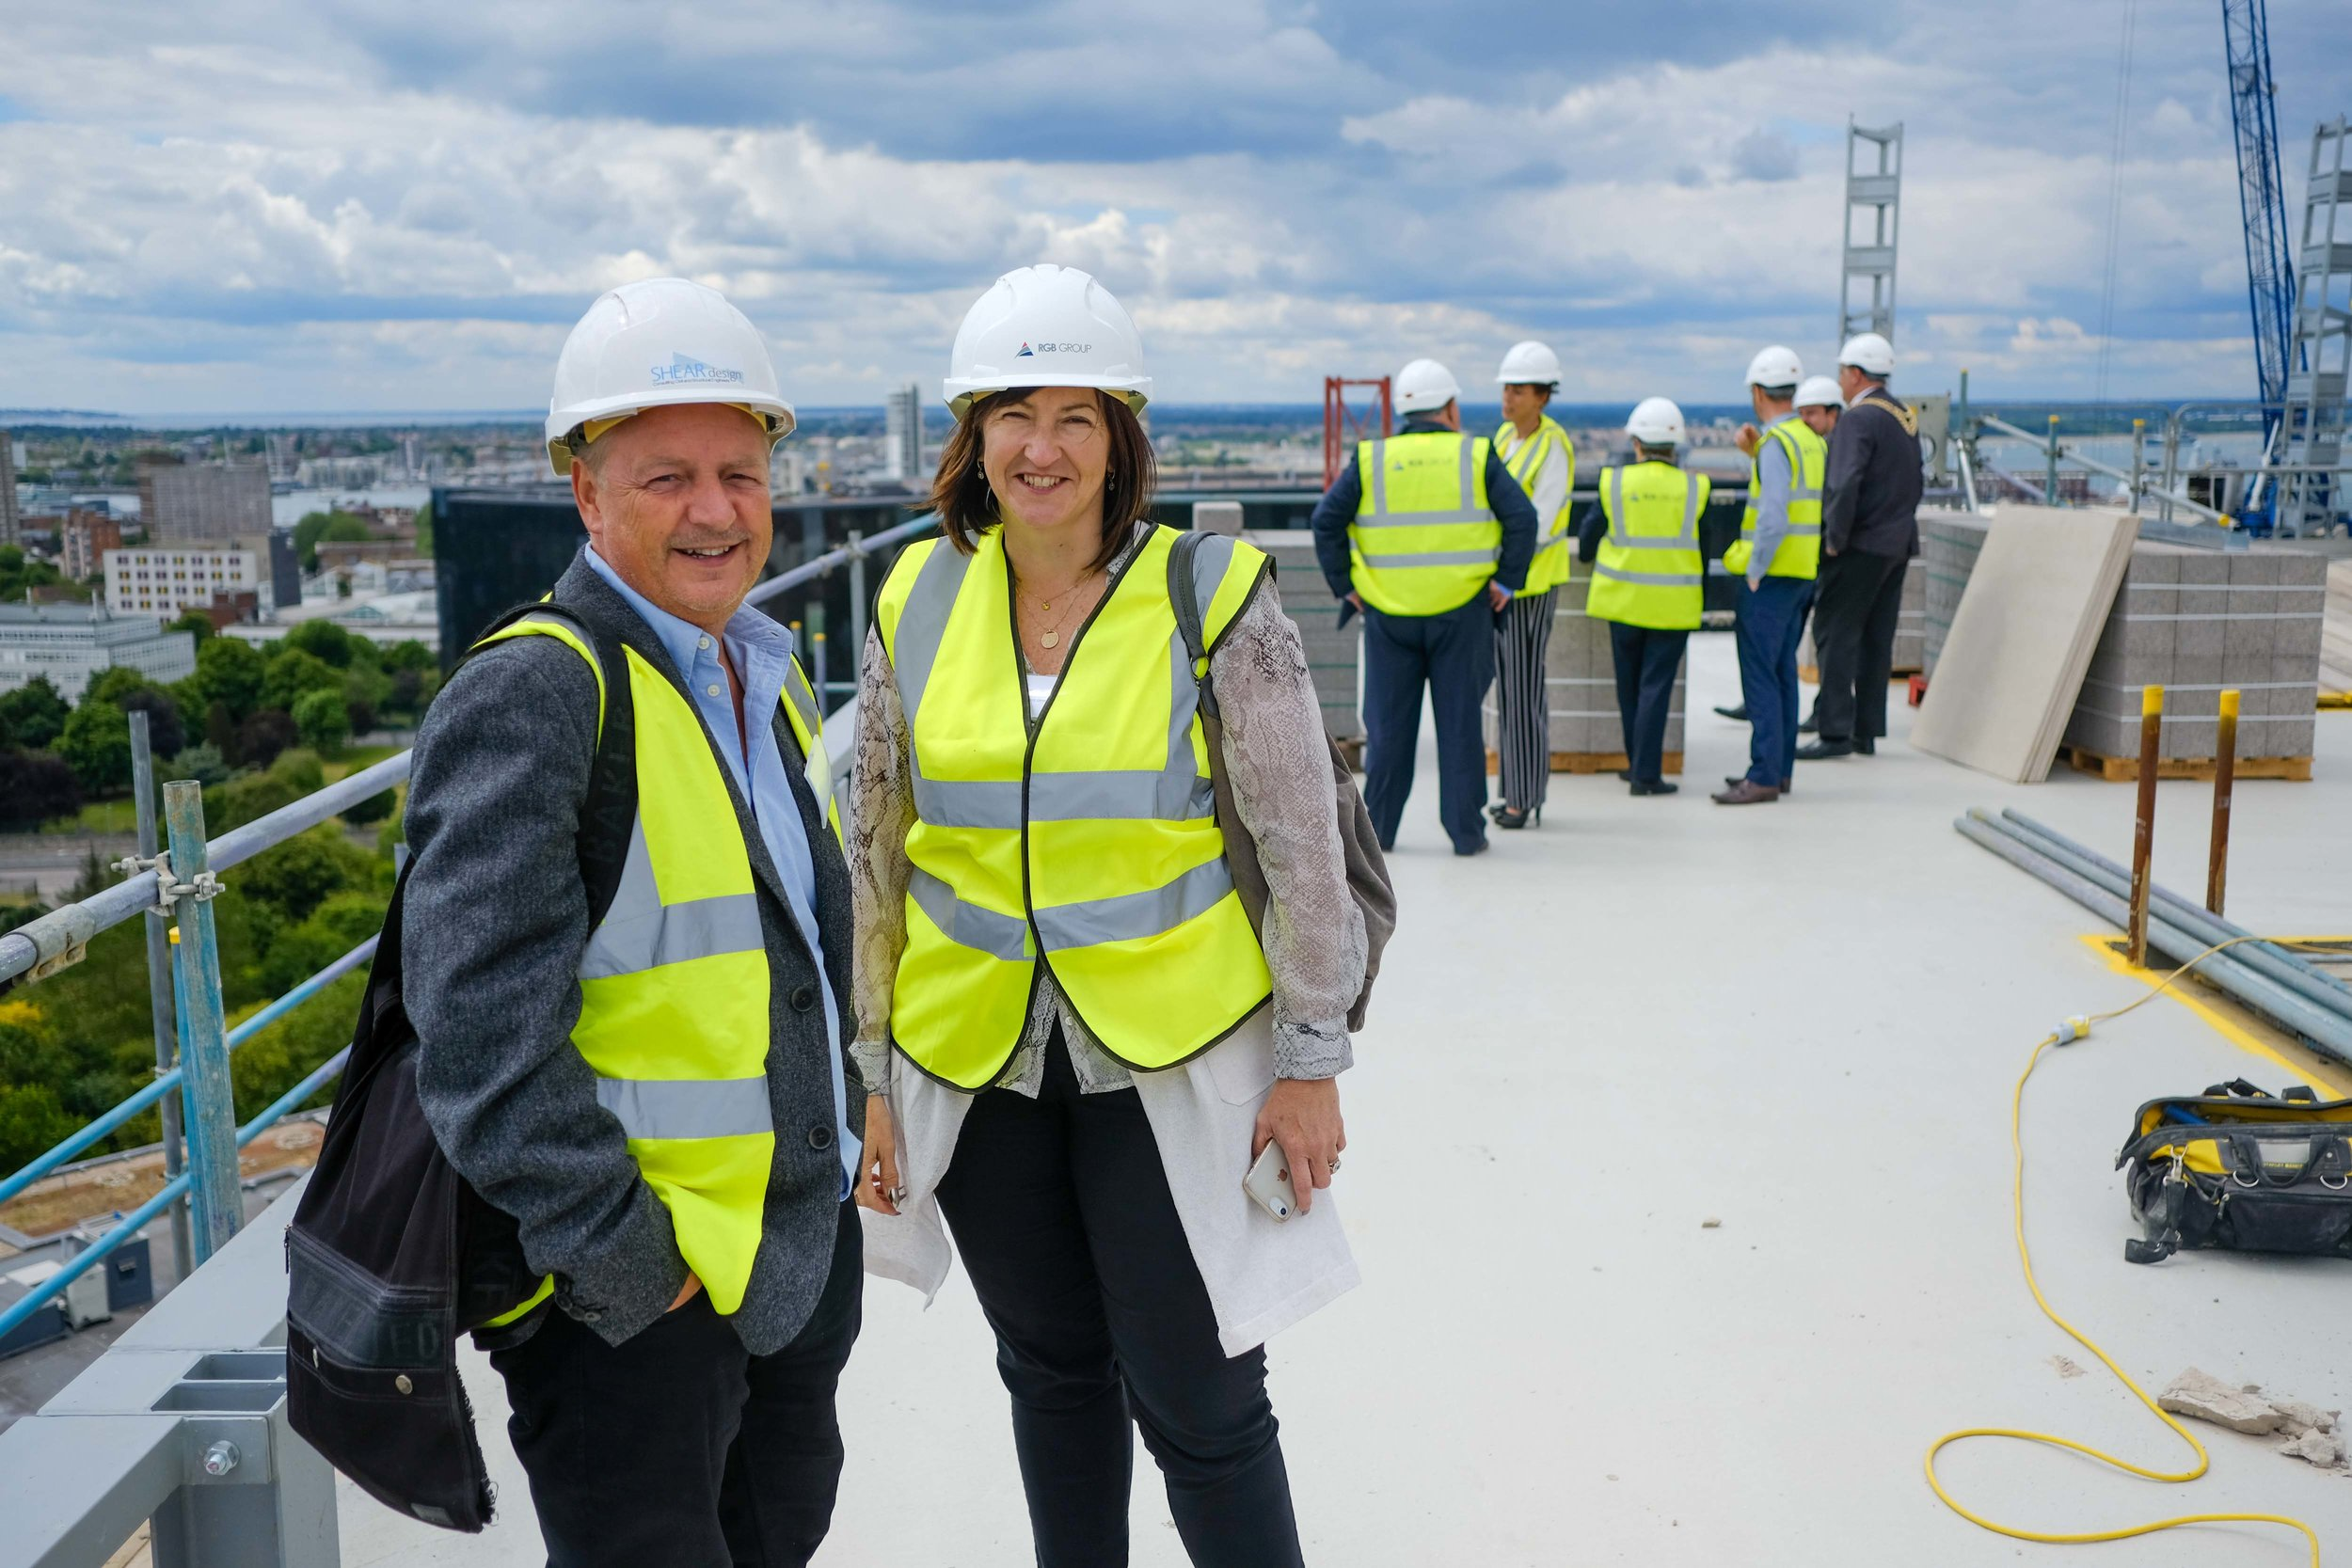 Stanhope House Topping Out 28.05.19 - Solent Sky Services--25.JPG